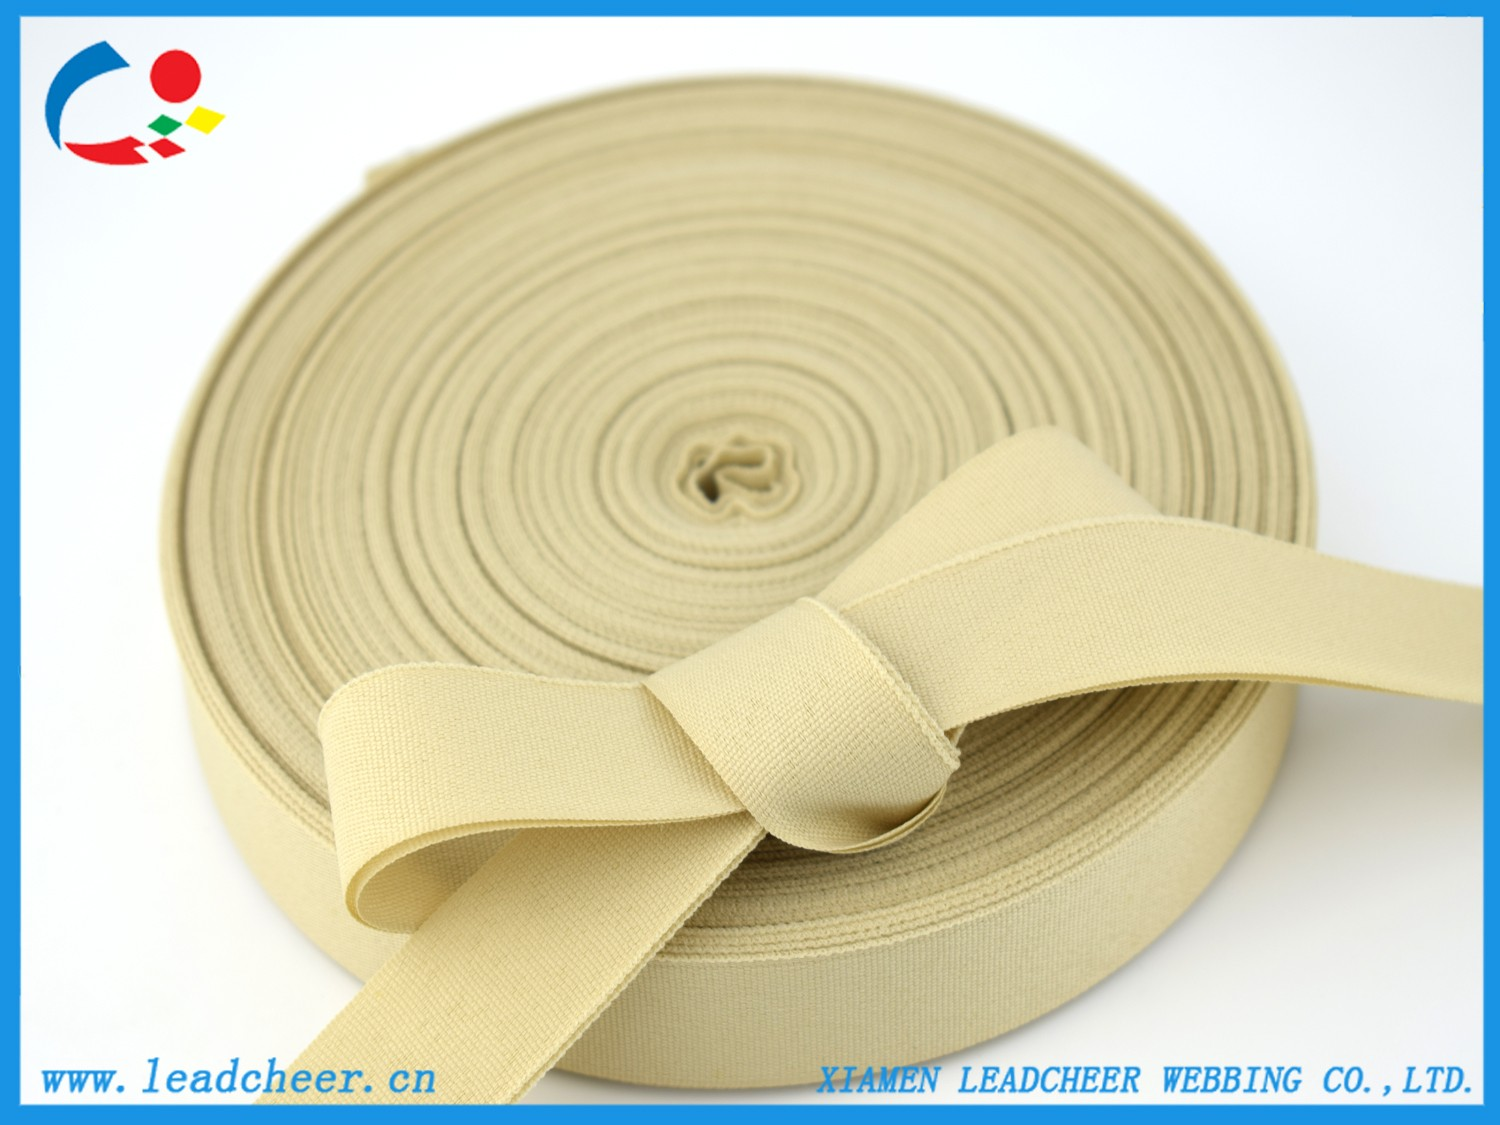 High quality Binding Webbing For Bags Quotes,China Binding Webbing For Bags Factory,Binding Webbing For Bags Purchasing